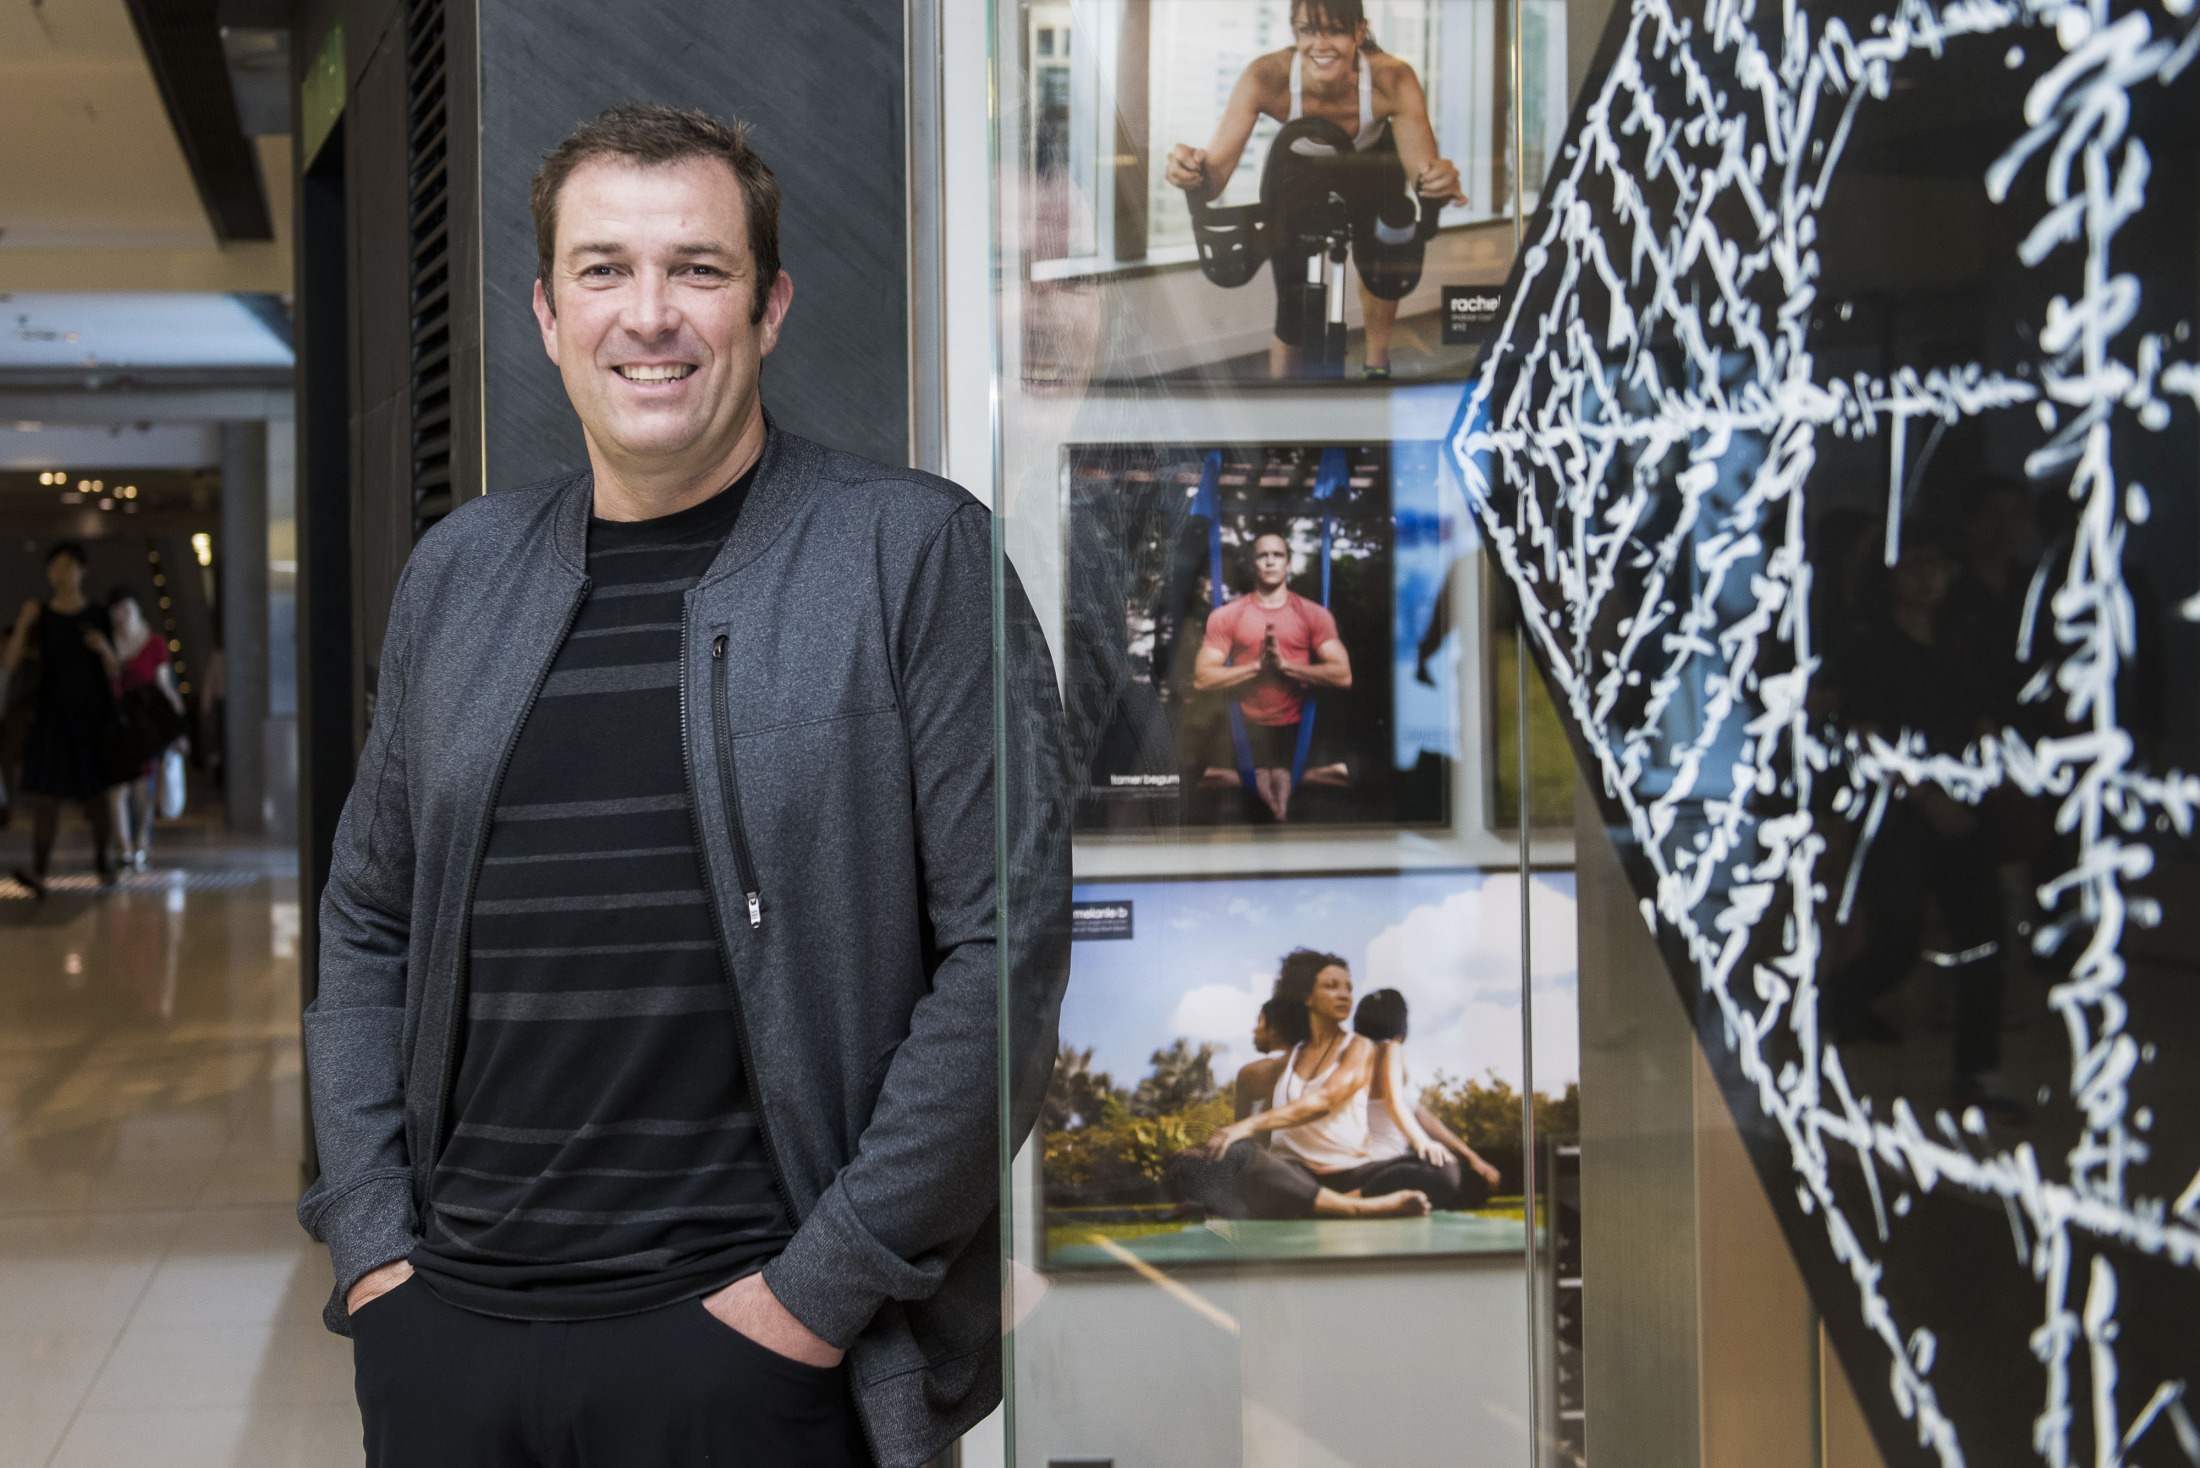 Lululemon Athletica Inc. Chief Executive Officer Laurent Potdevin At New Hong Kong Store